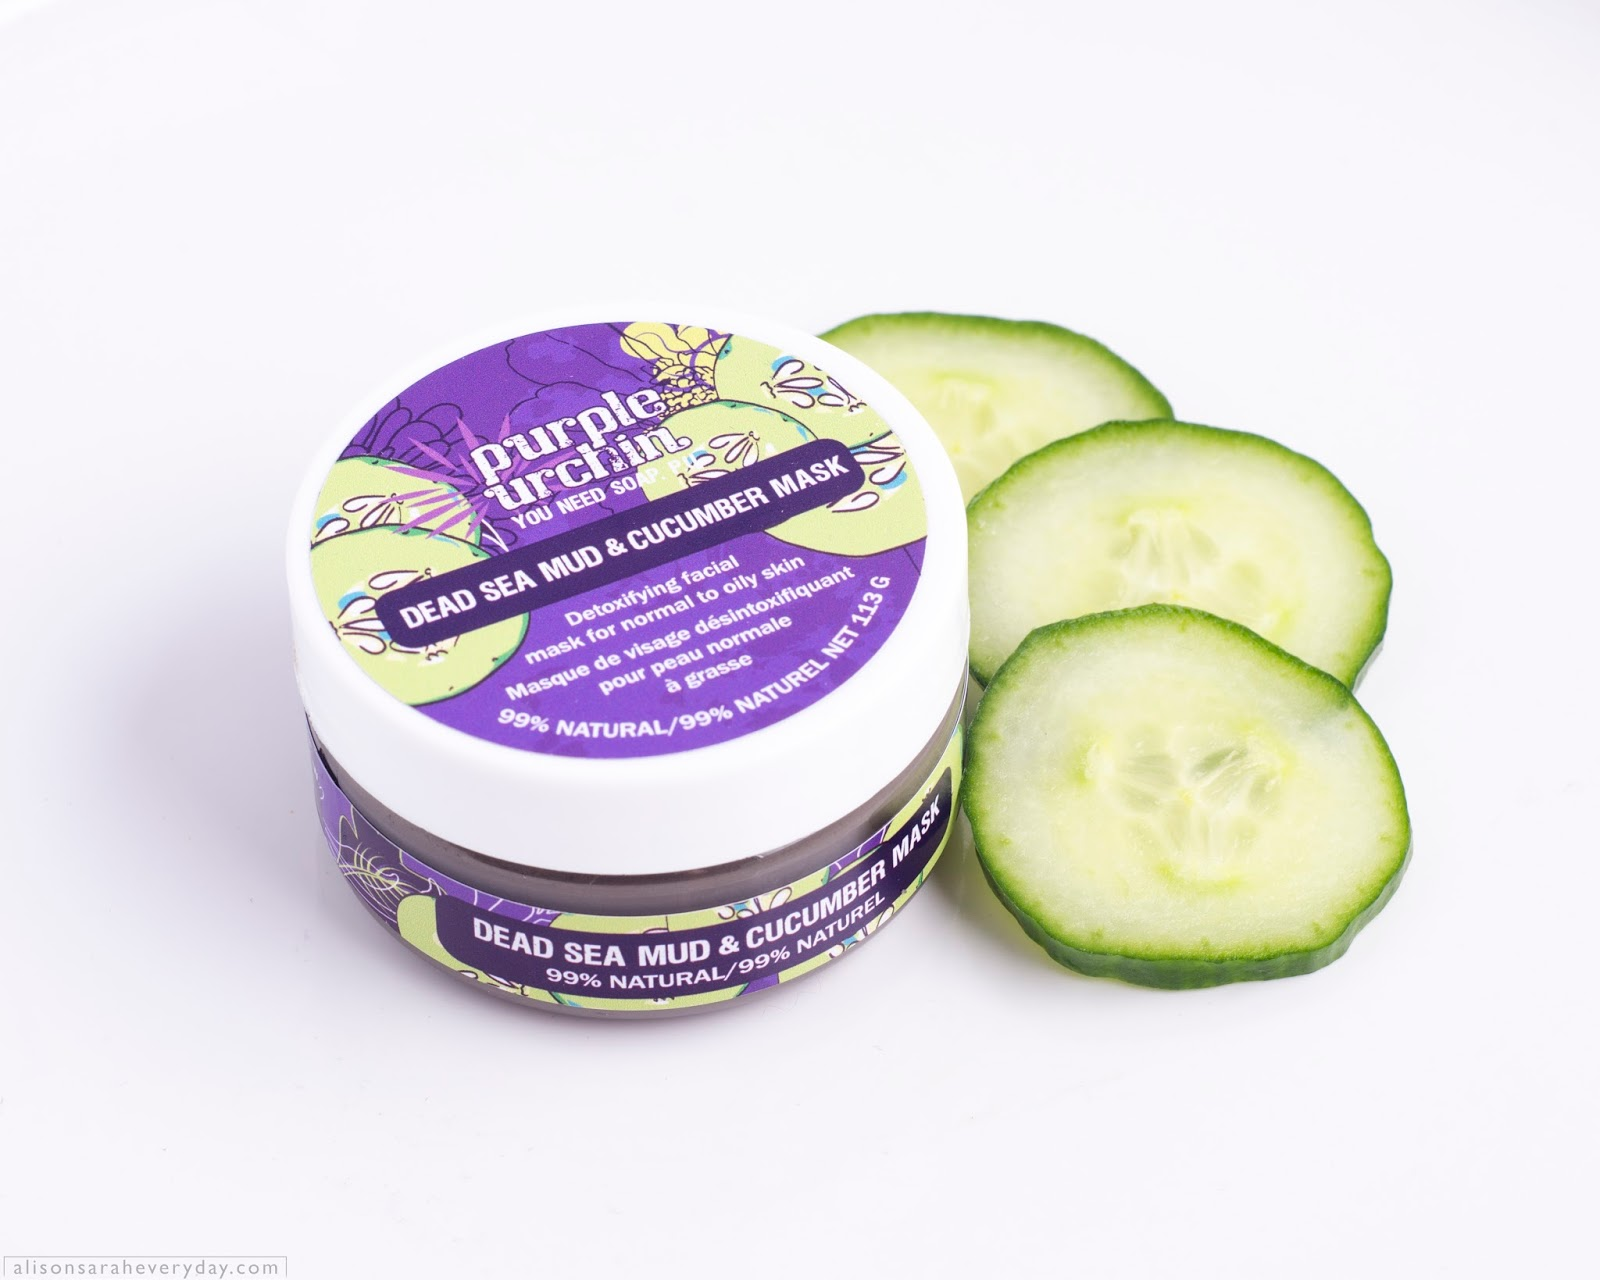 Purple Urchin Dead Sea Mud & Cucumber Mask view from the side with cucumber slices